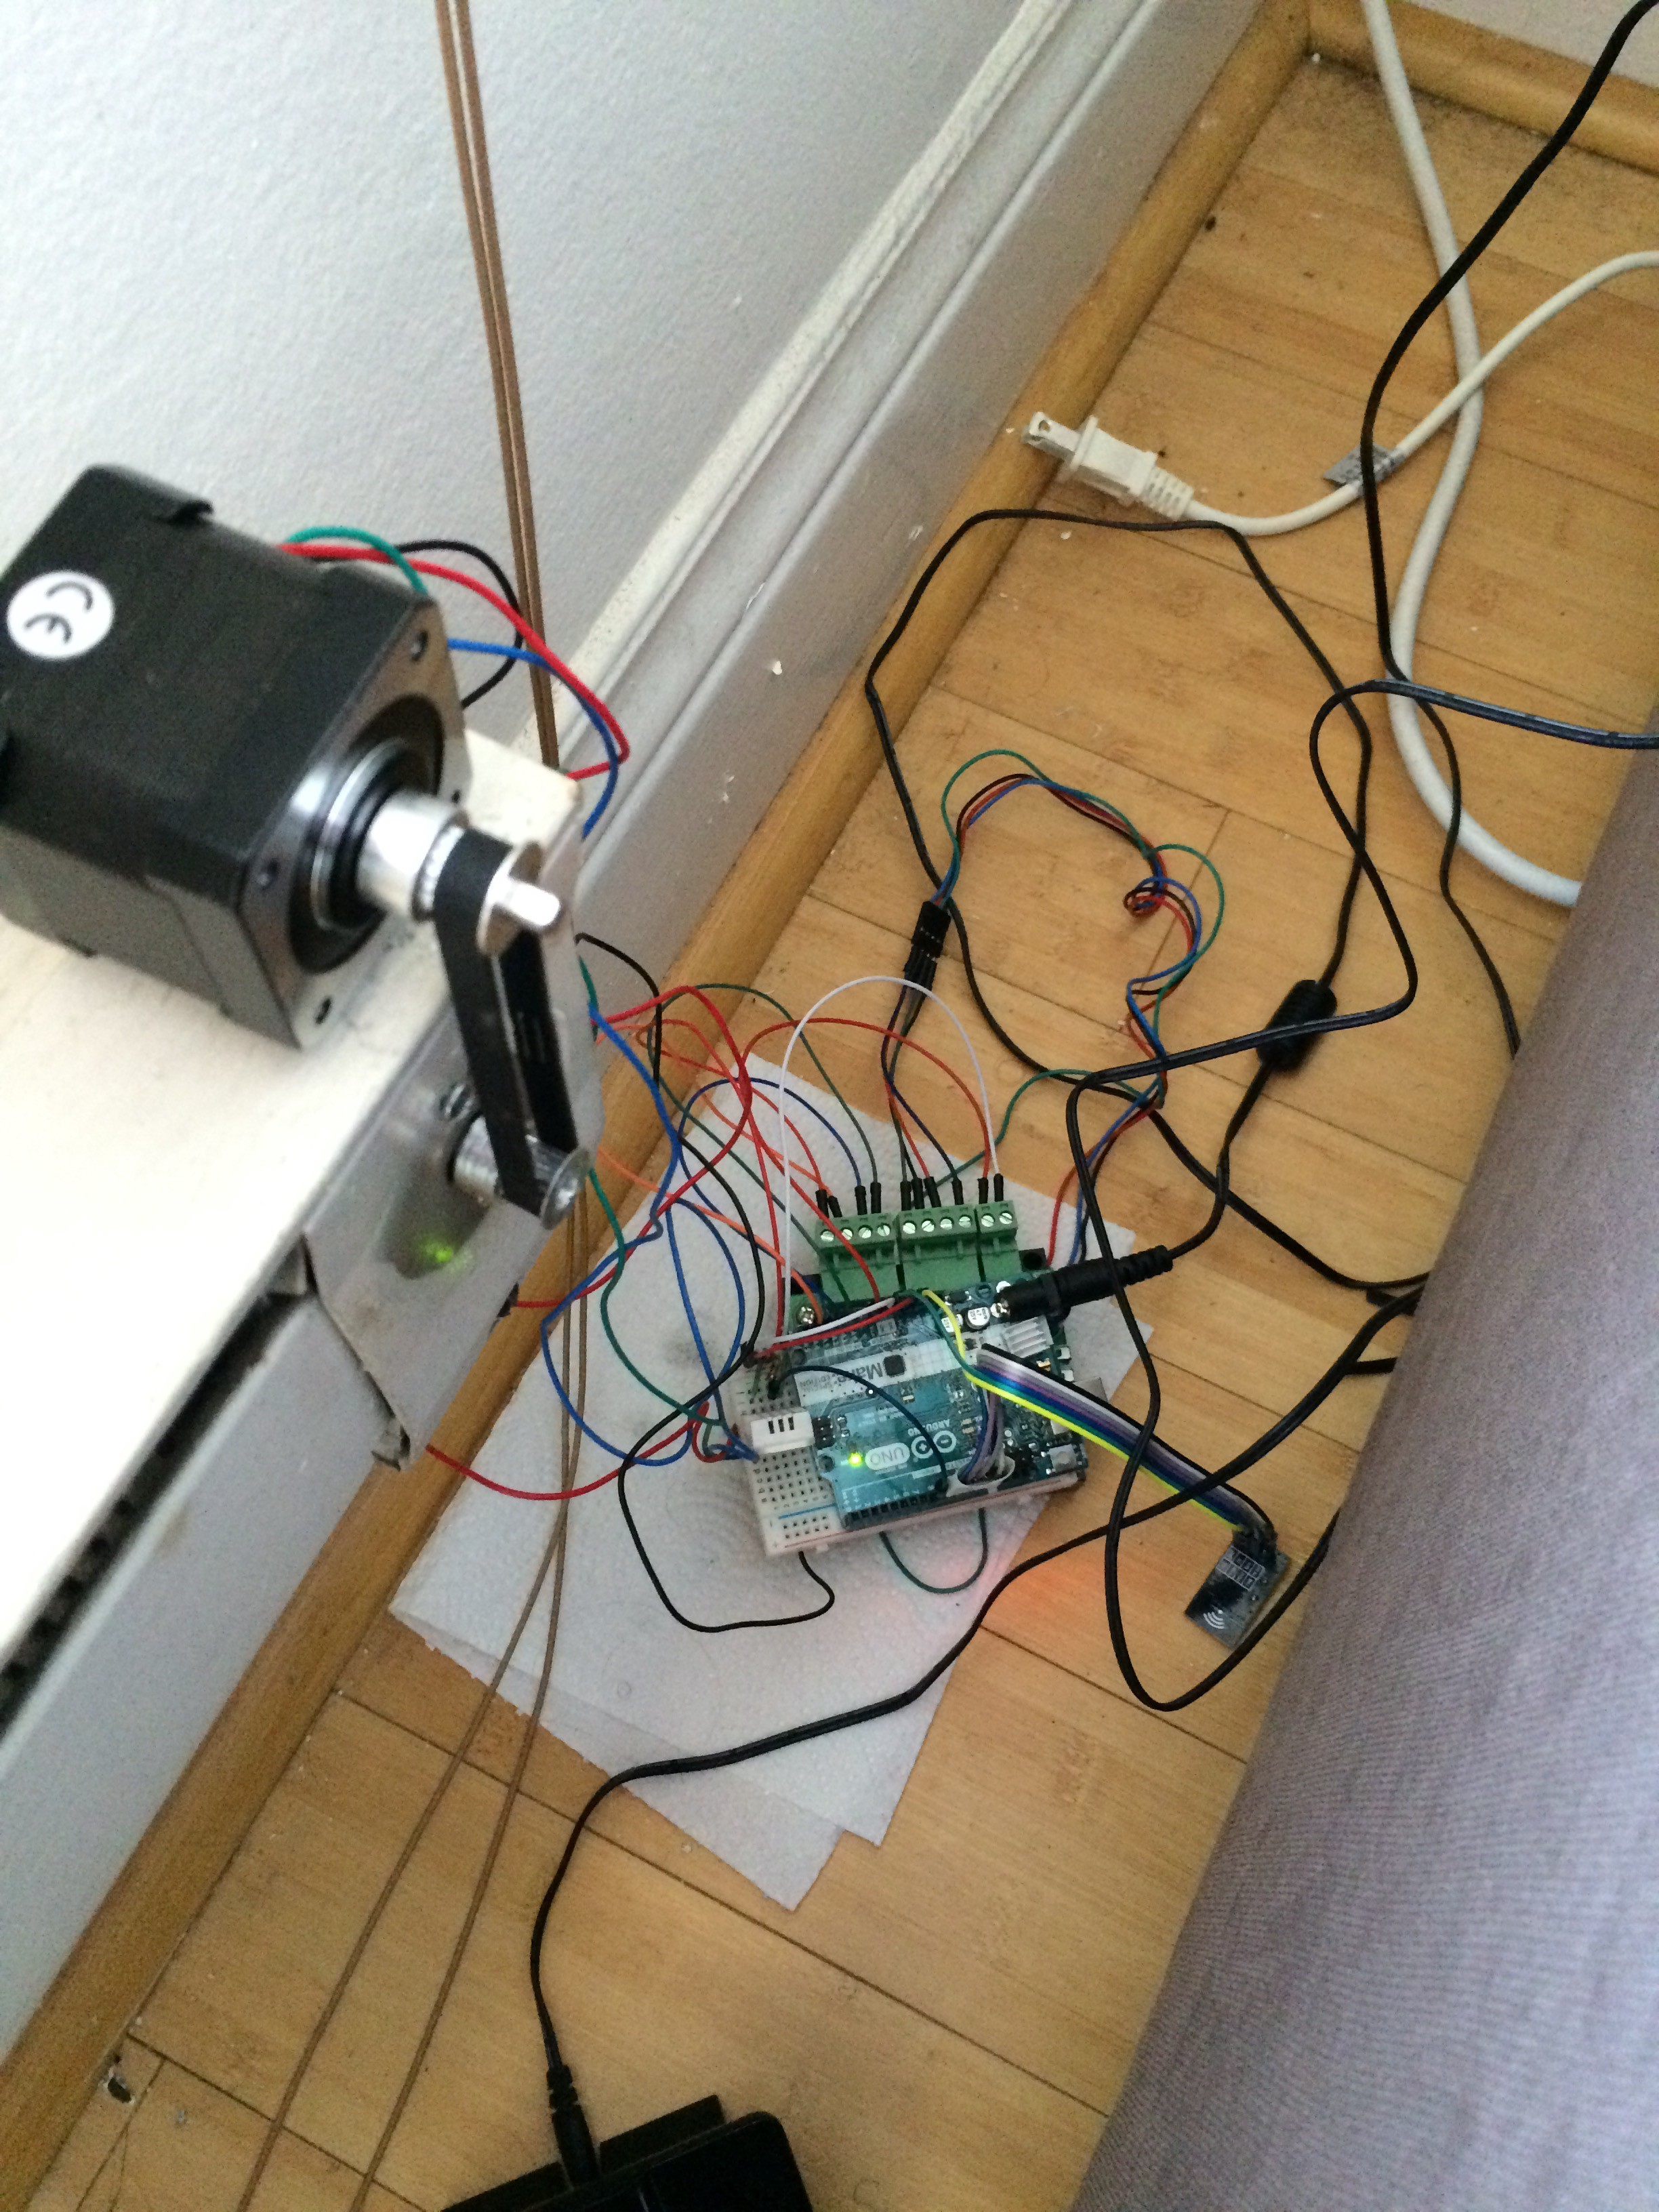 Controlling The Stepper Motor Wirelessly Through Rf Link We Are Using